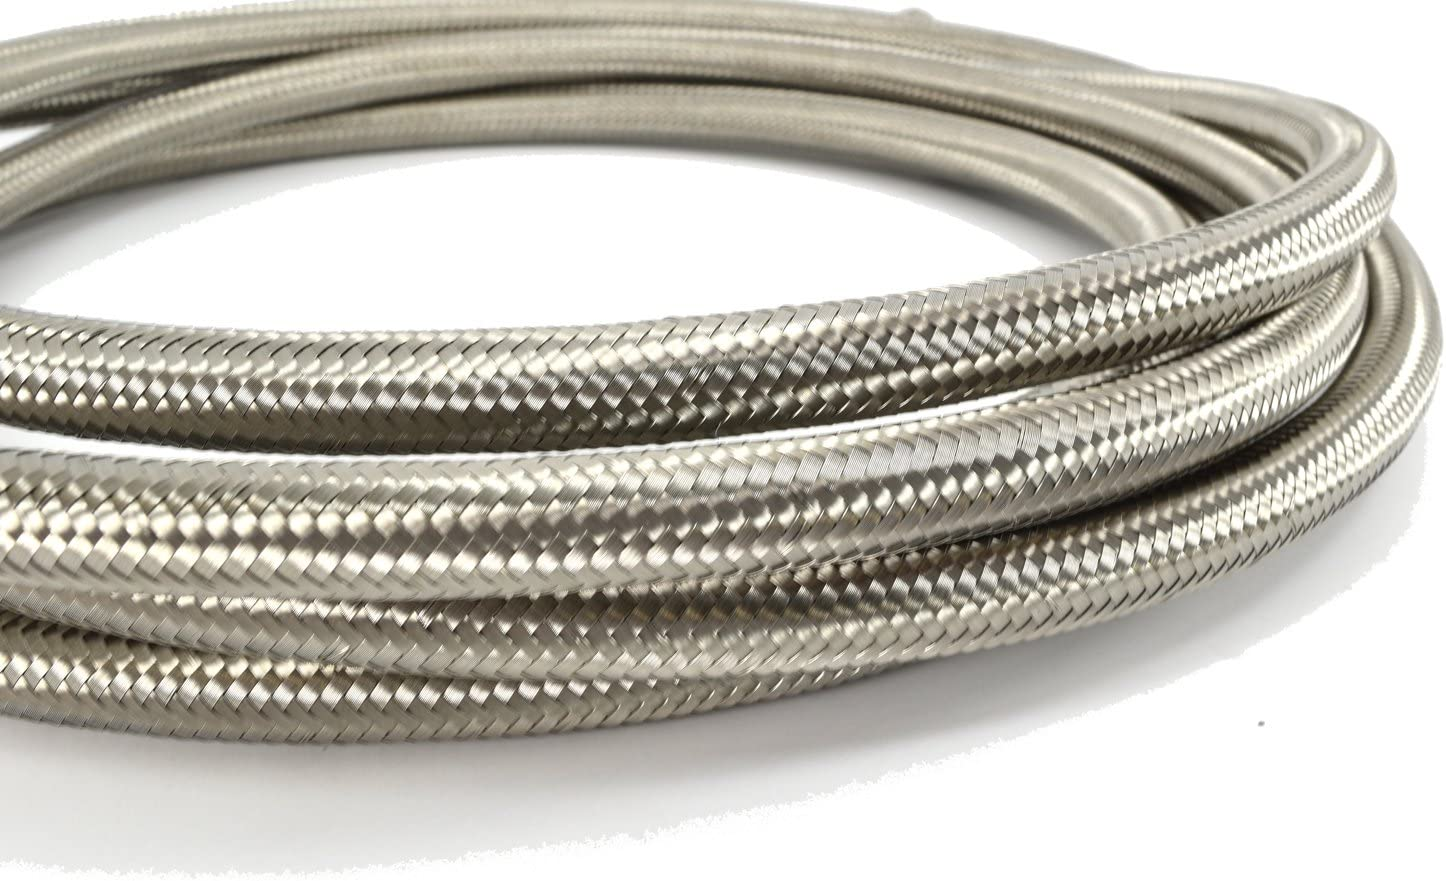 Oil 10AN Stainless Braided Hose for Fuel Coolant and Air 20 Feet Kraken Automotive